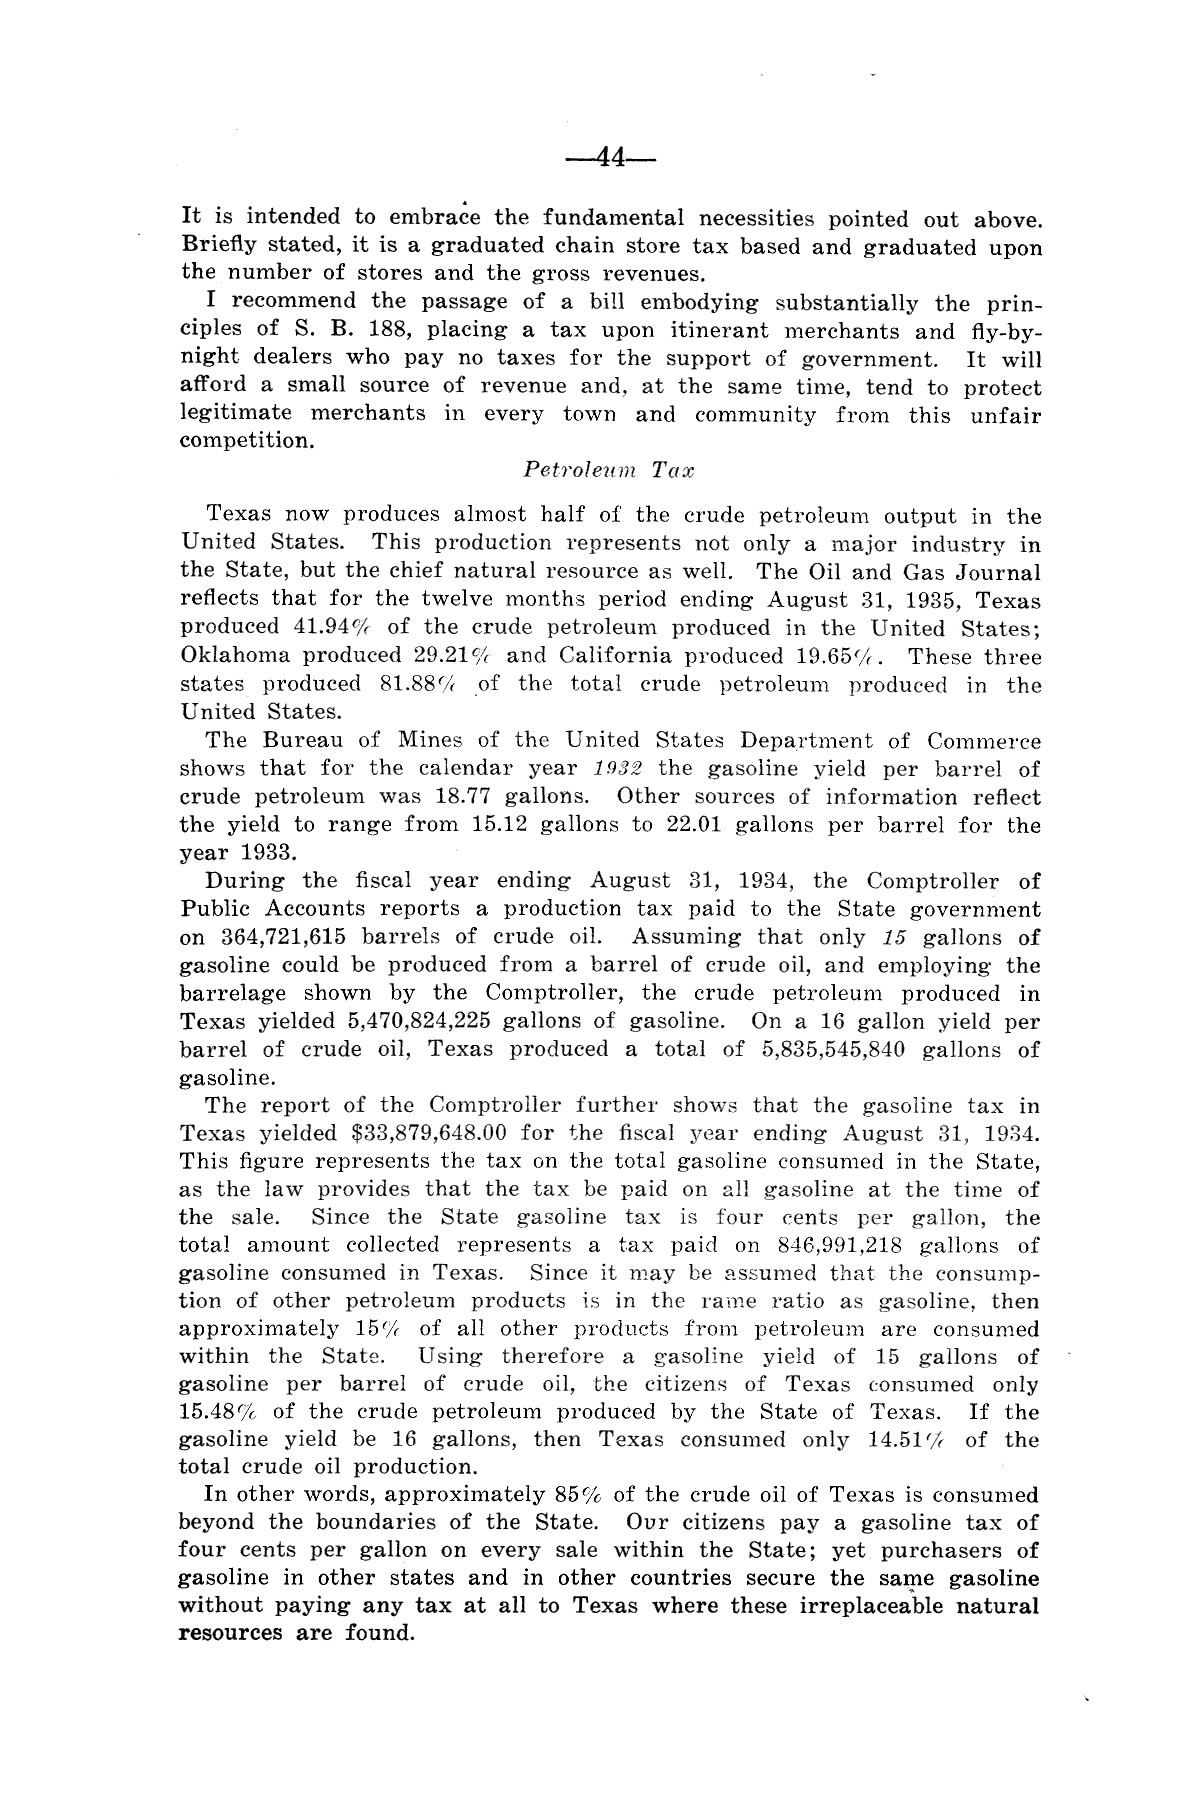 Legislative Messages of Hon. James V. Allred, Governor of Texas 1935-1939                                                                                                      [Sequence #]: 43 of 263